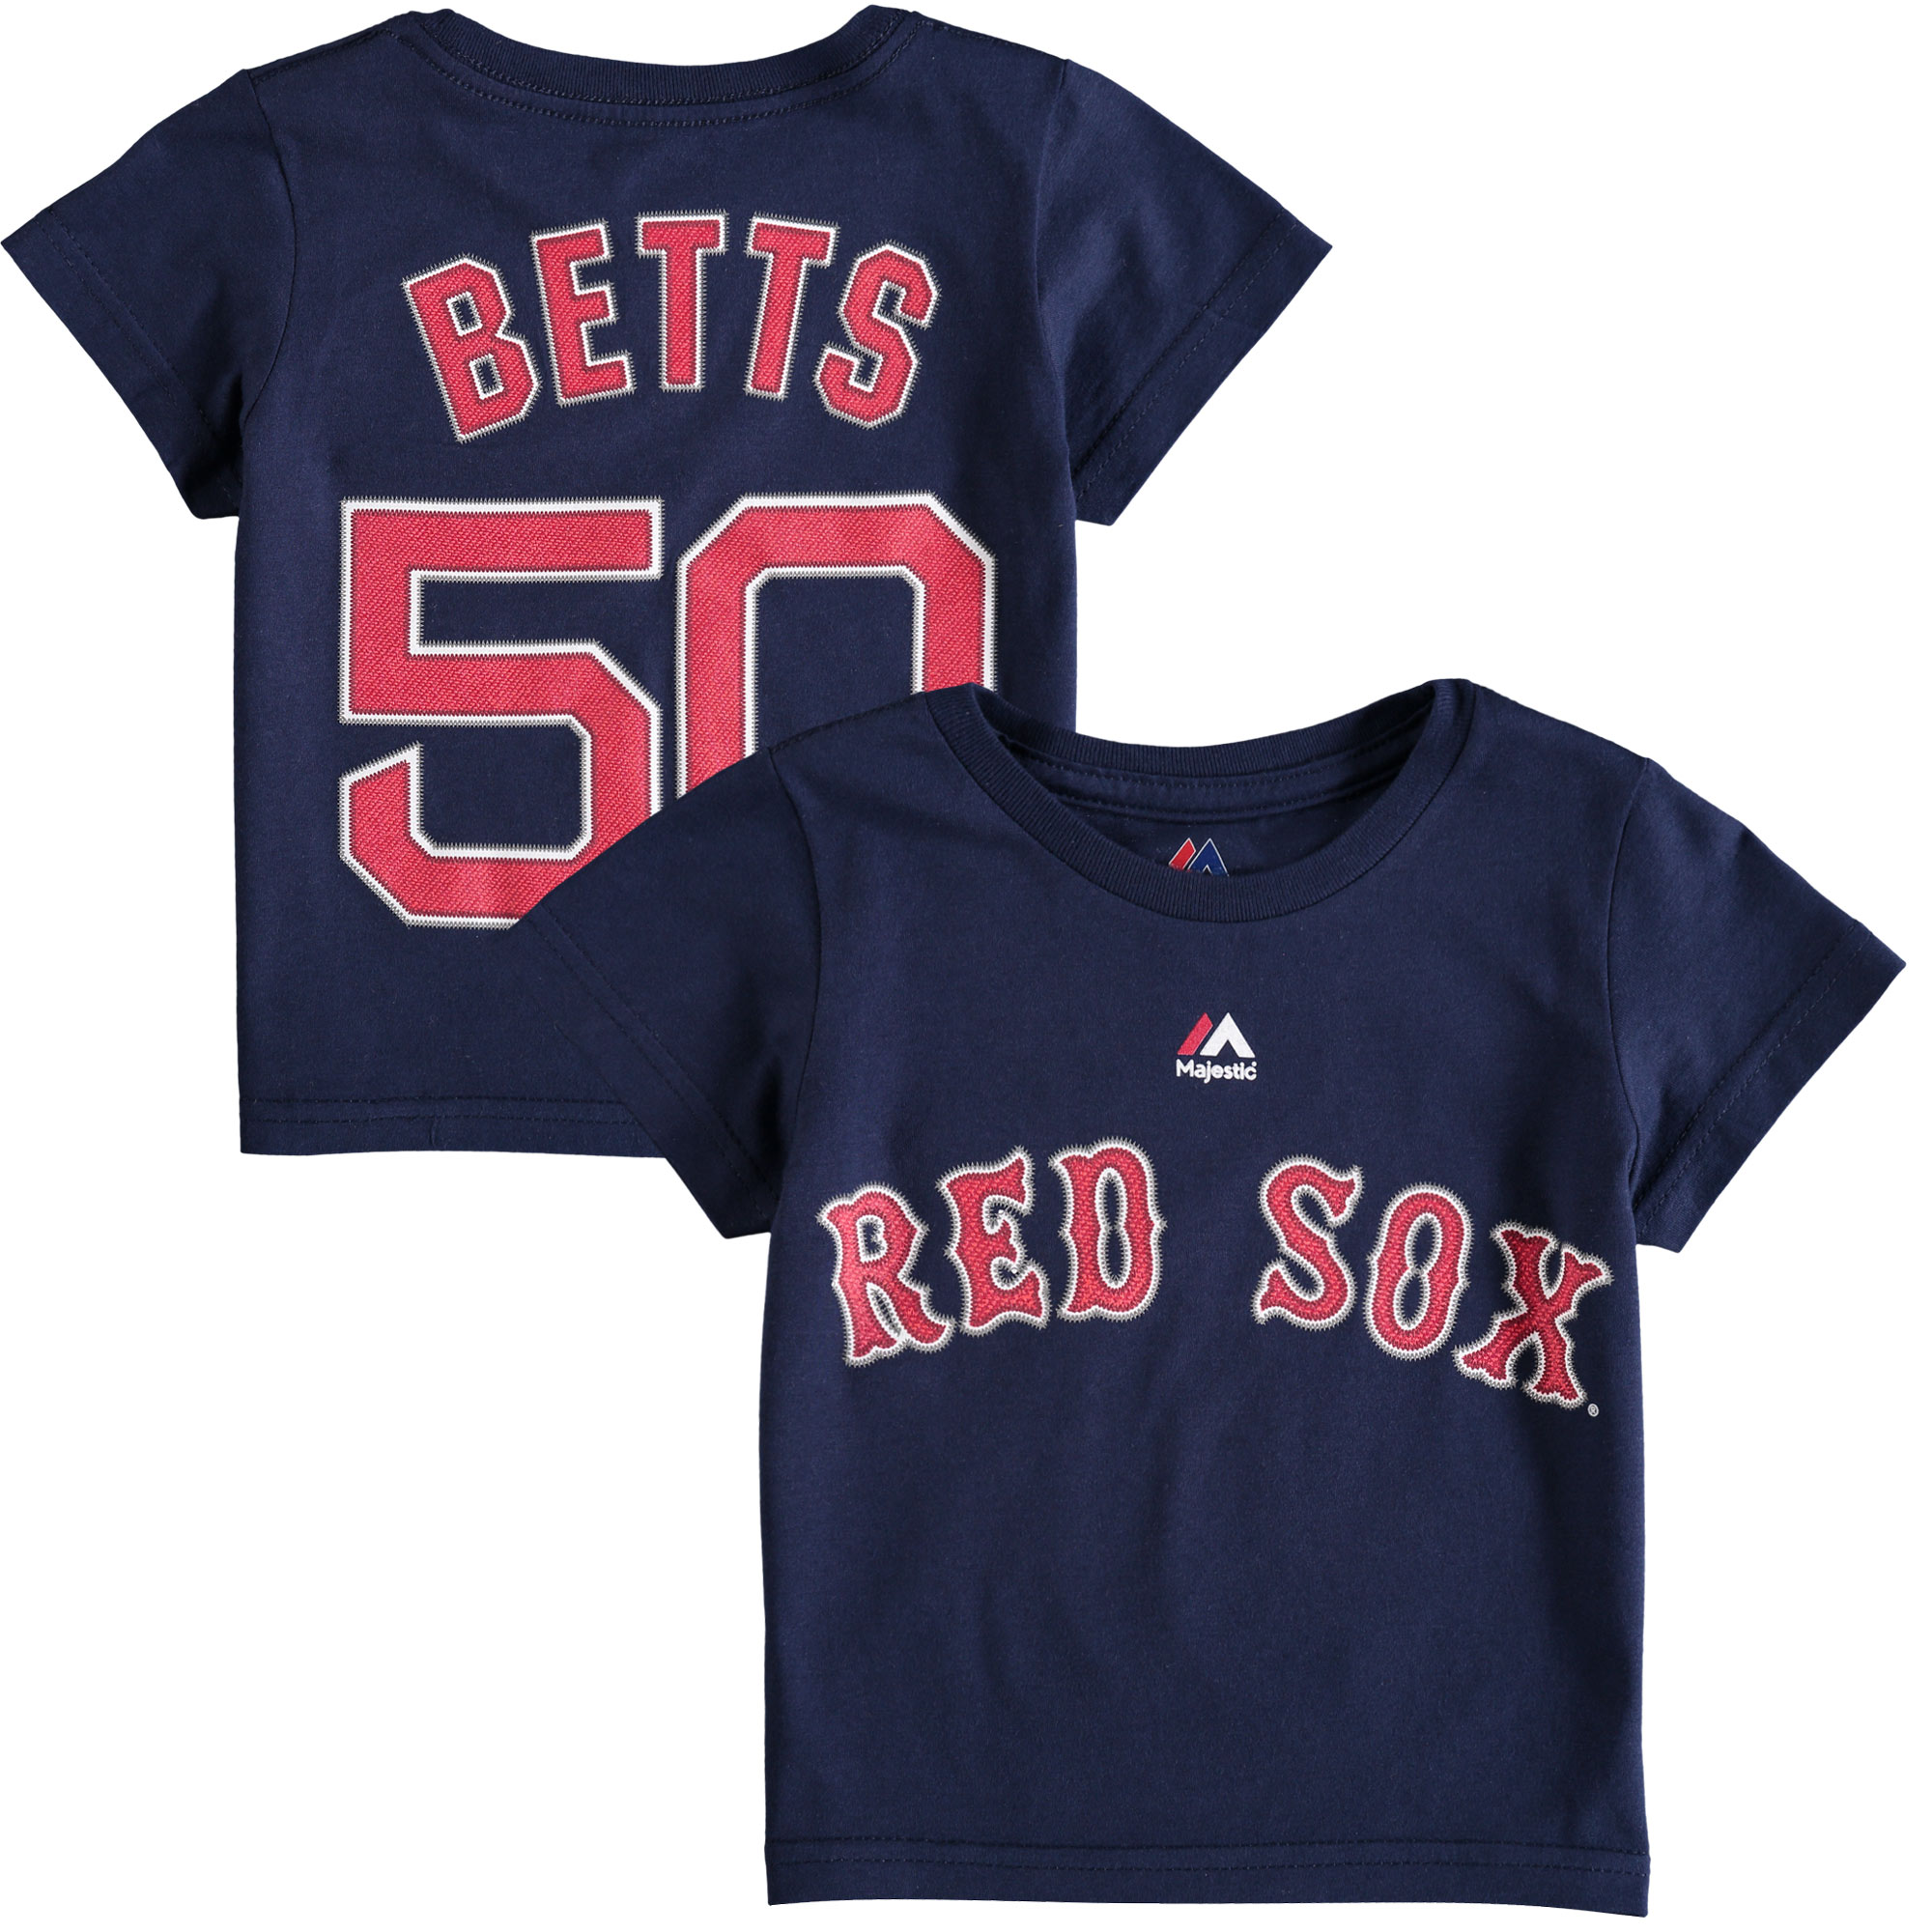 Mookie Betts Boston Red Sox Majestic Toddler Player Name and Number T-Shirt - Navy